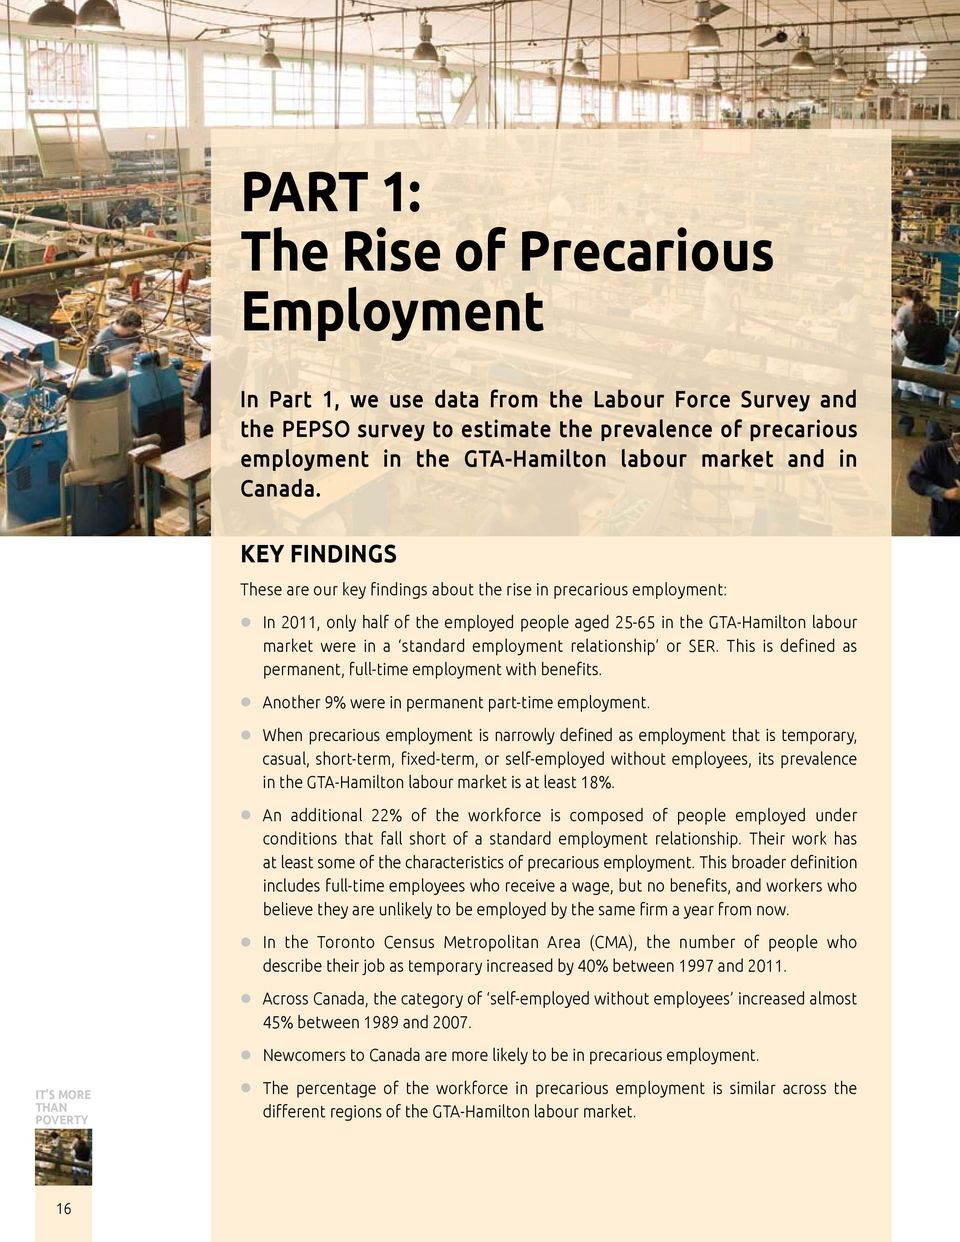 It s more than poverty Key findings These are our key findings about the rise in precarious employment: In 2011, only half of the employed people aged 25-65 in the GTA-Hamilton labour market were in